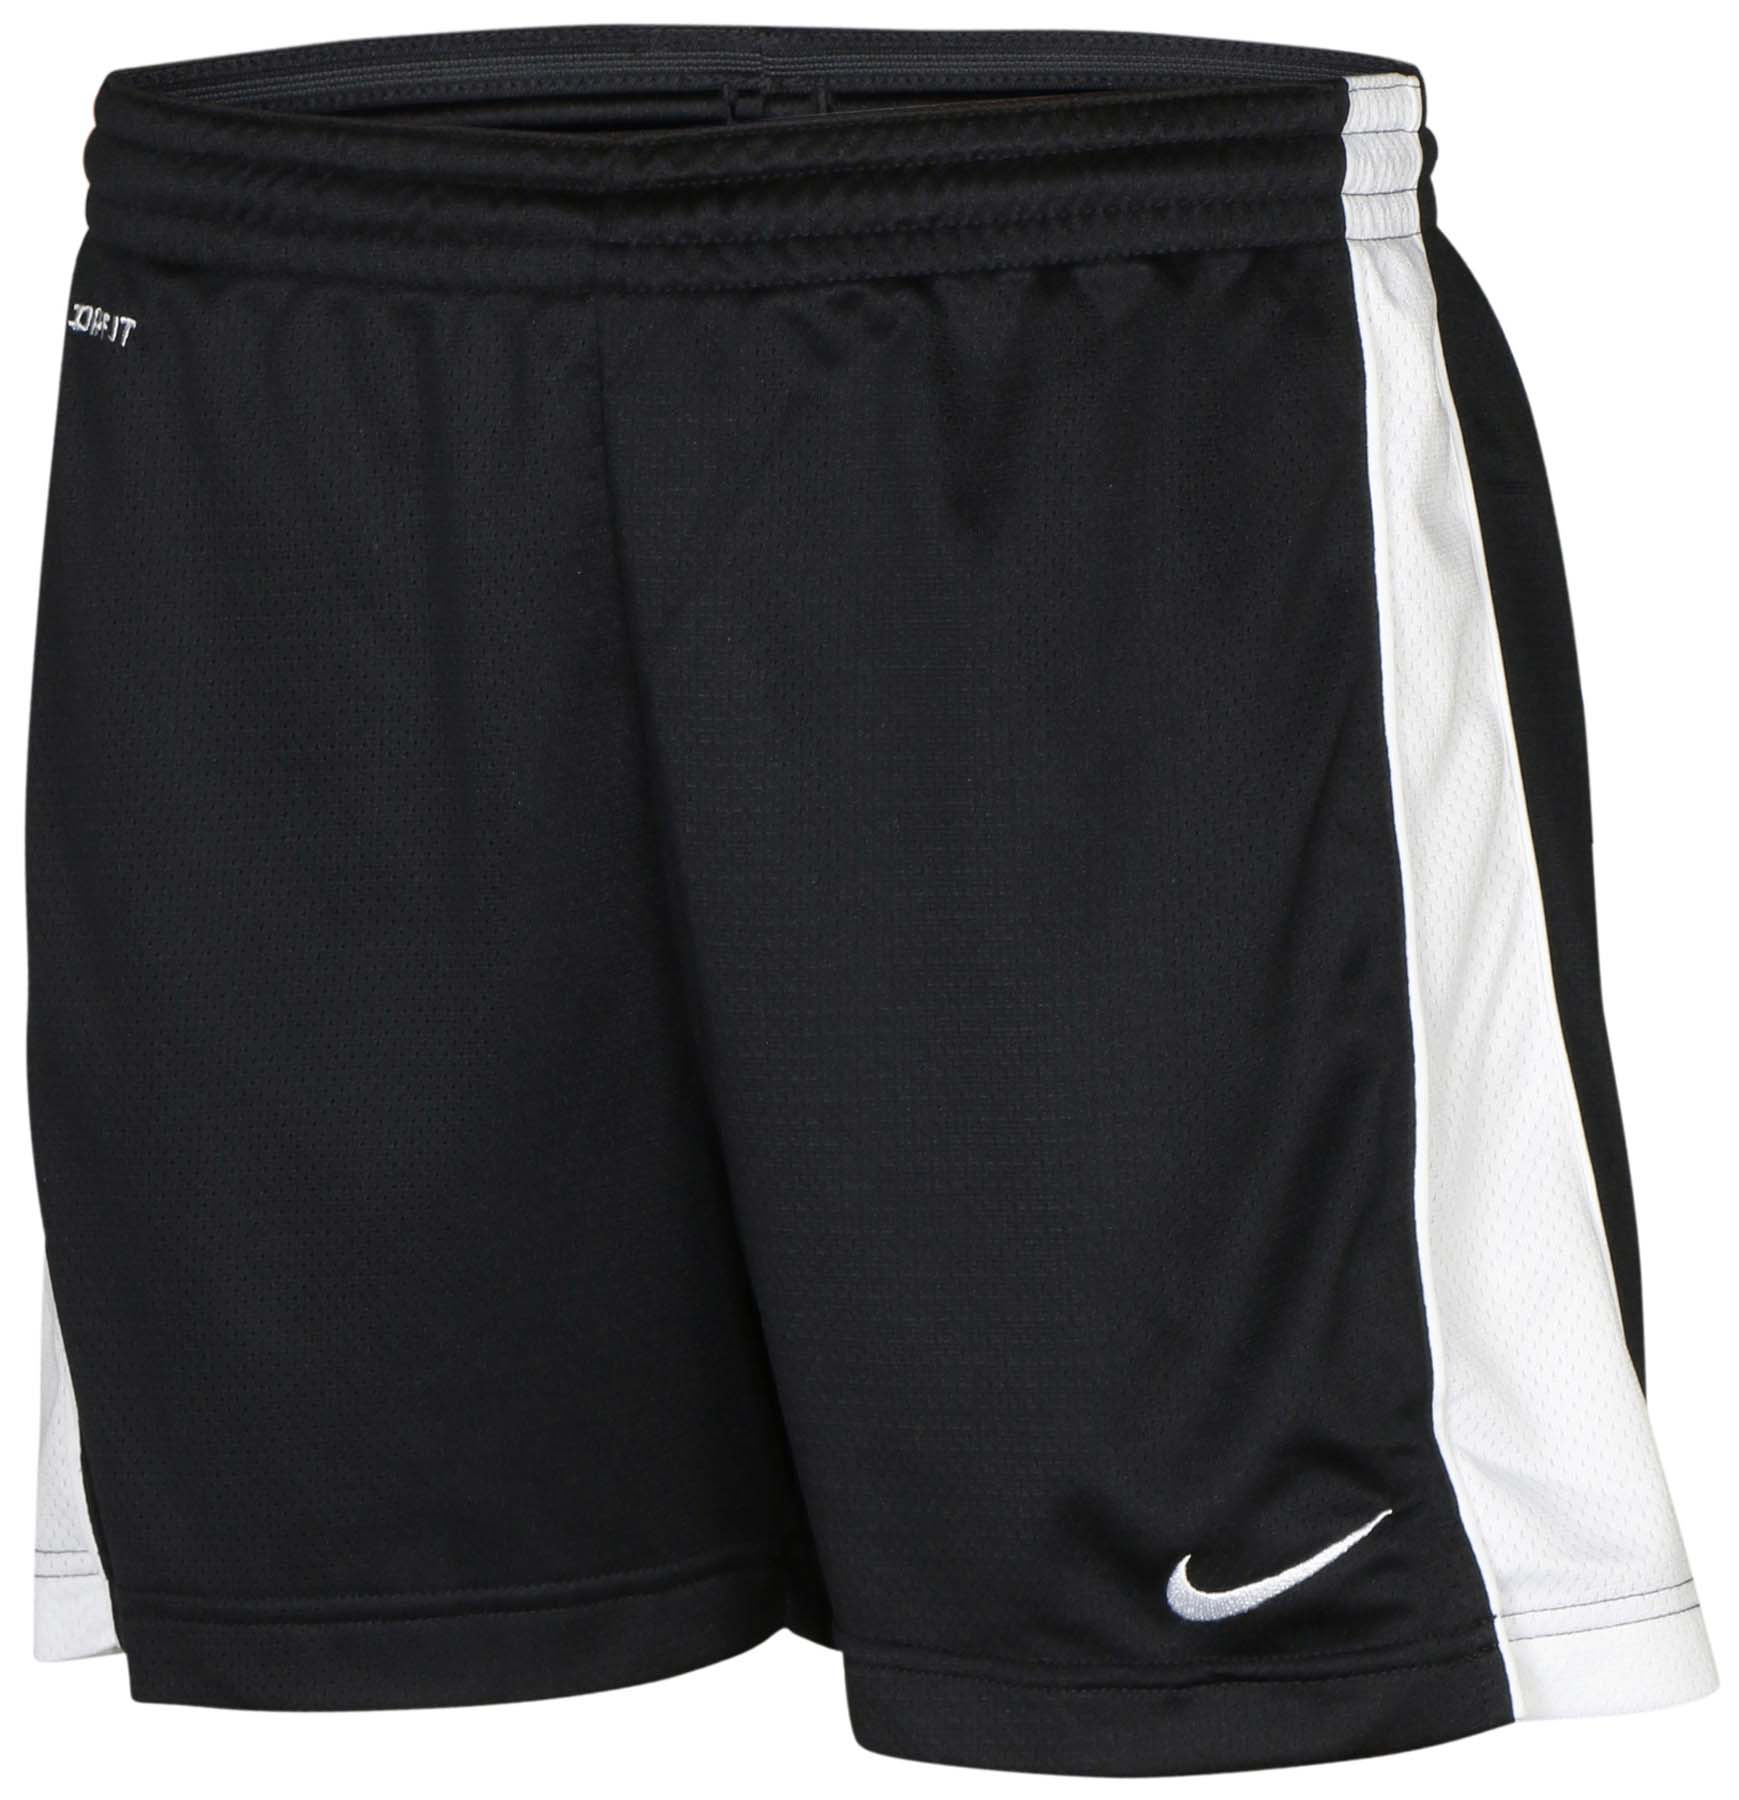 Nike Women's Dri-Fit Academy Knit Soccer Shorts | eBay